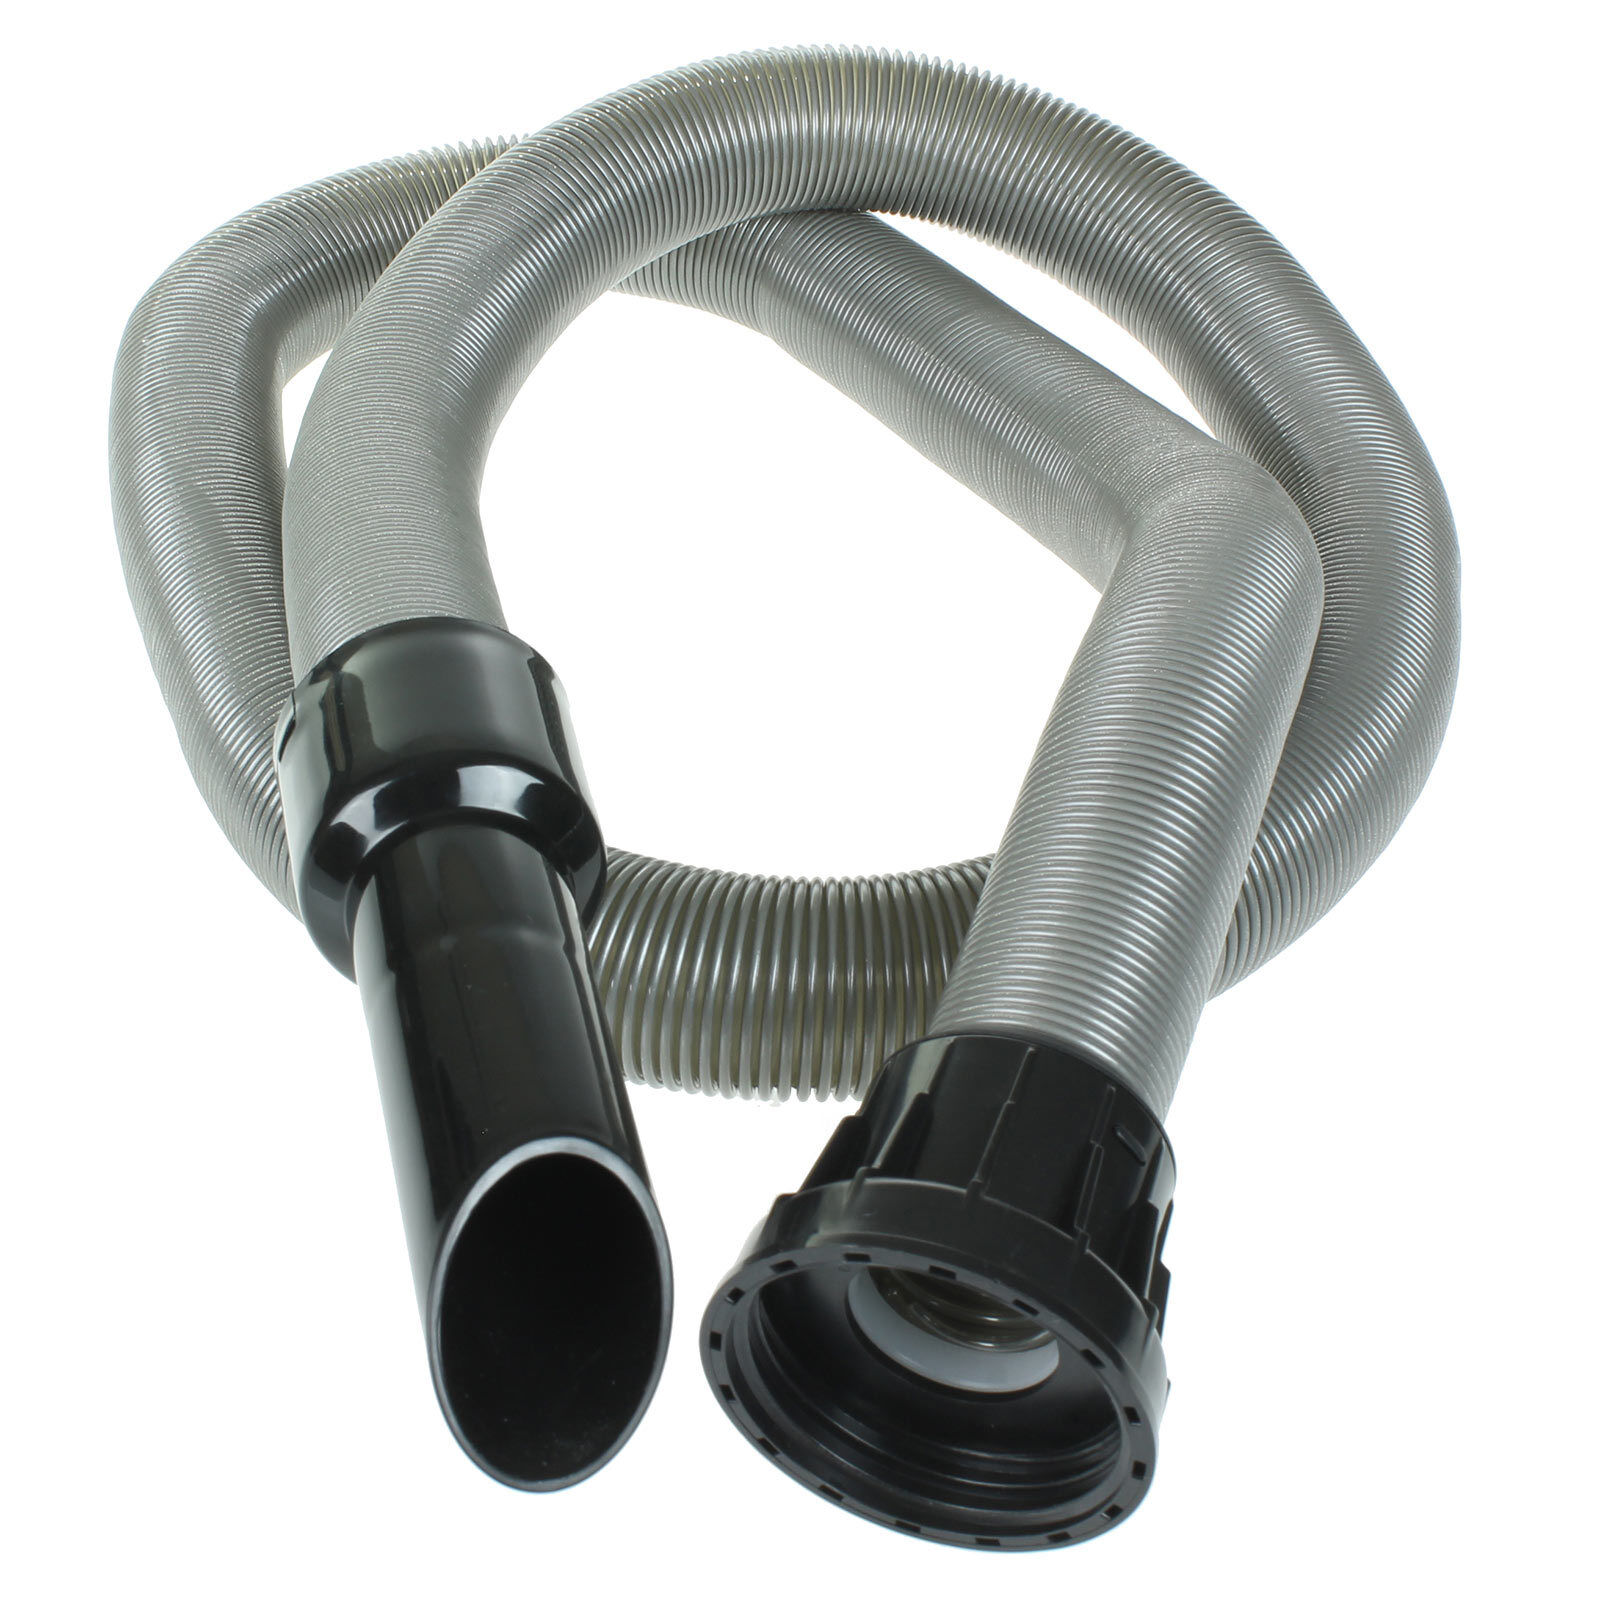 Qualtex Commercial Hose with Toolkit for all Numatic Henry Hetty Hoover Vacuum Cleaners Hose Pipe 2.5m Floor Tool 32mm